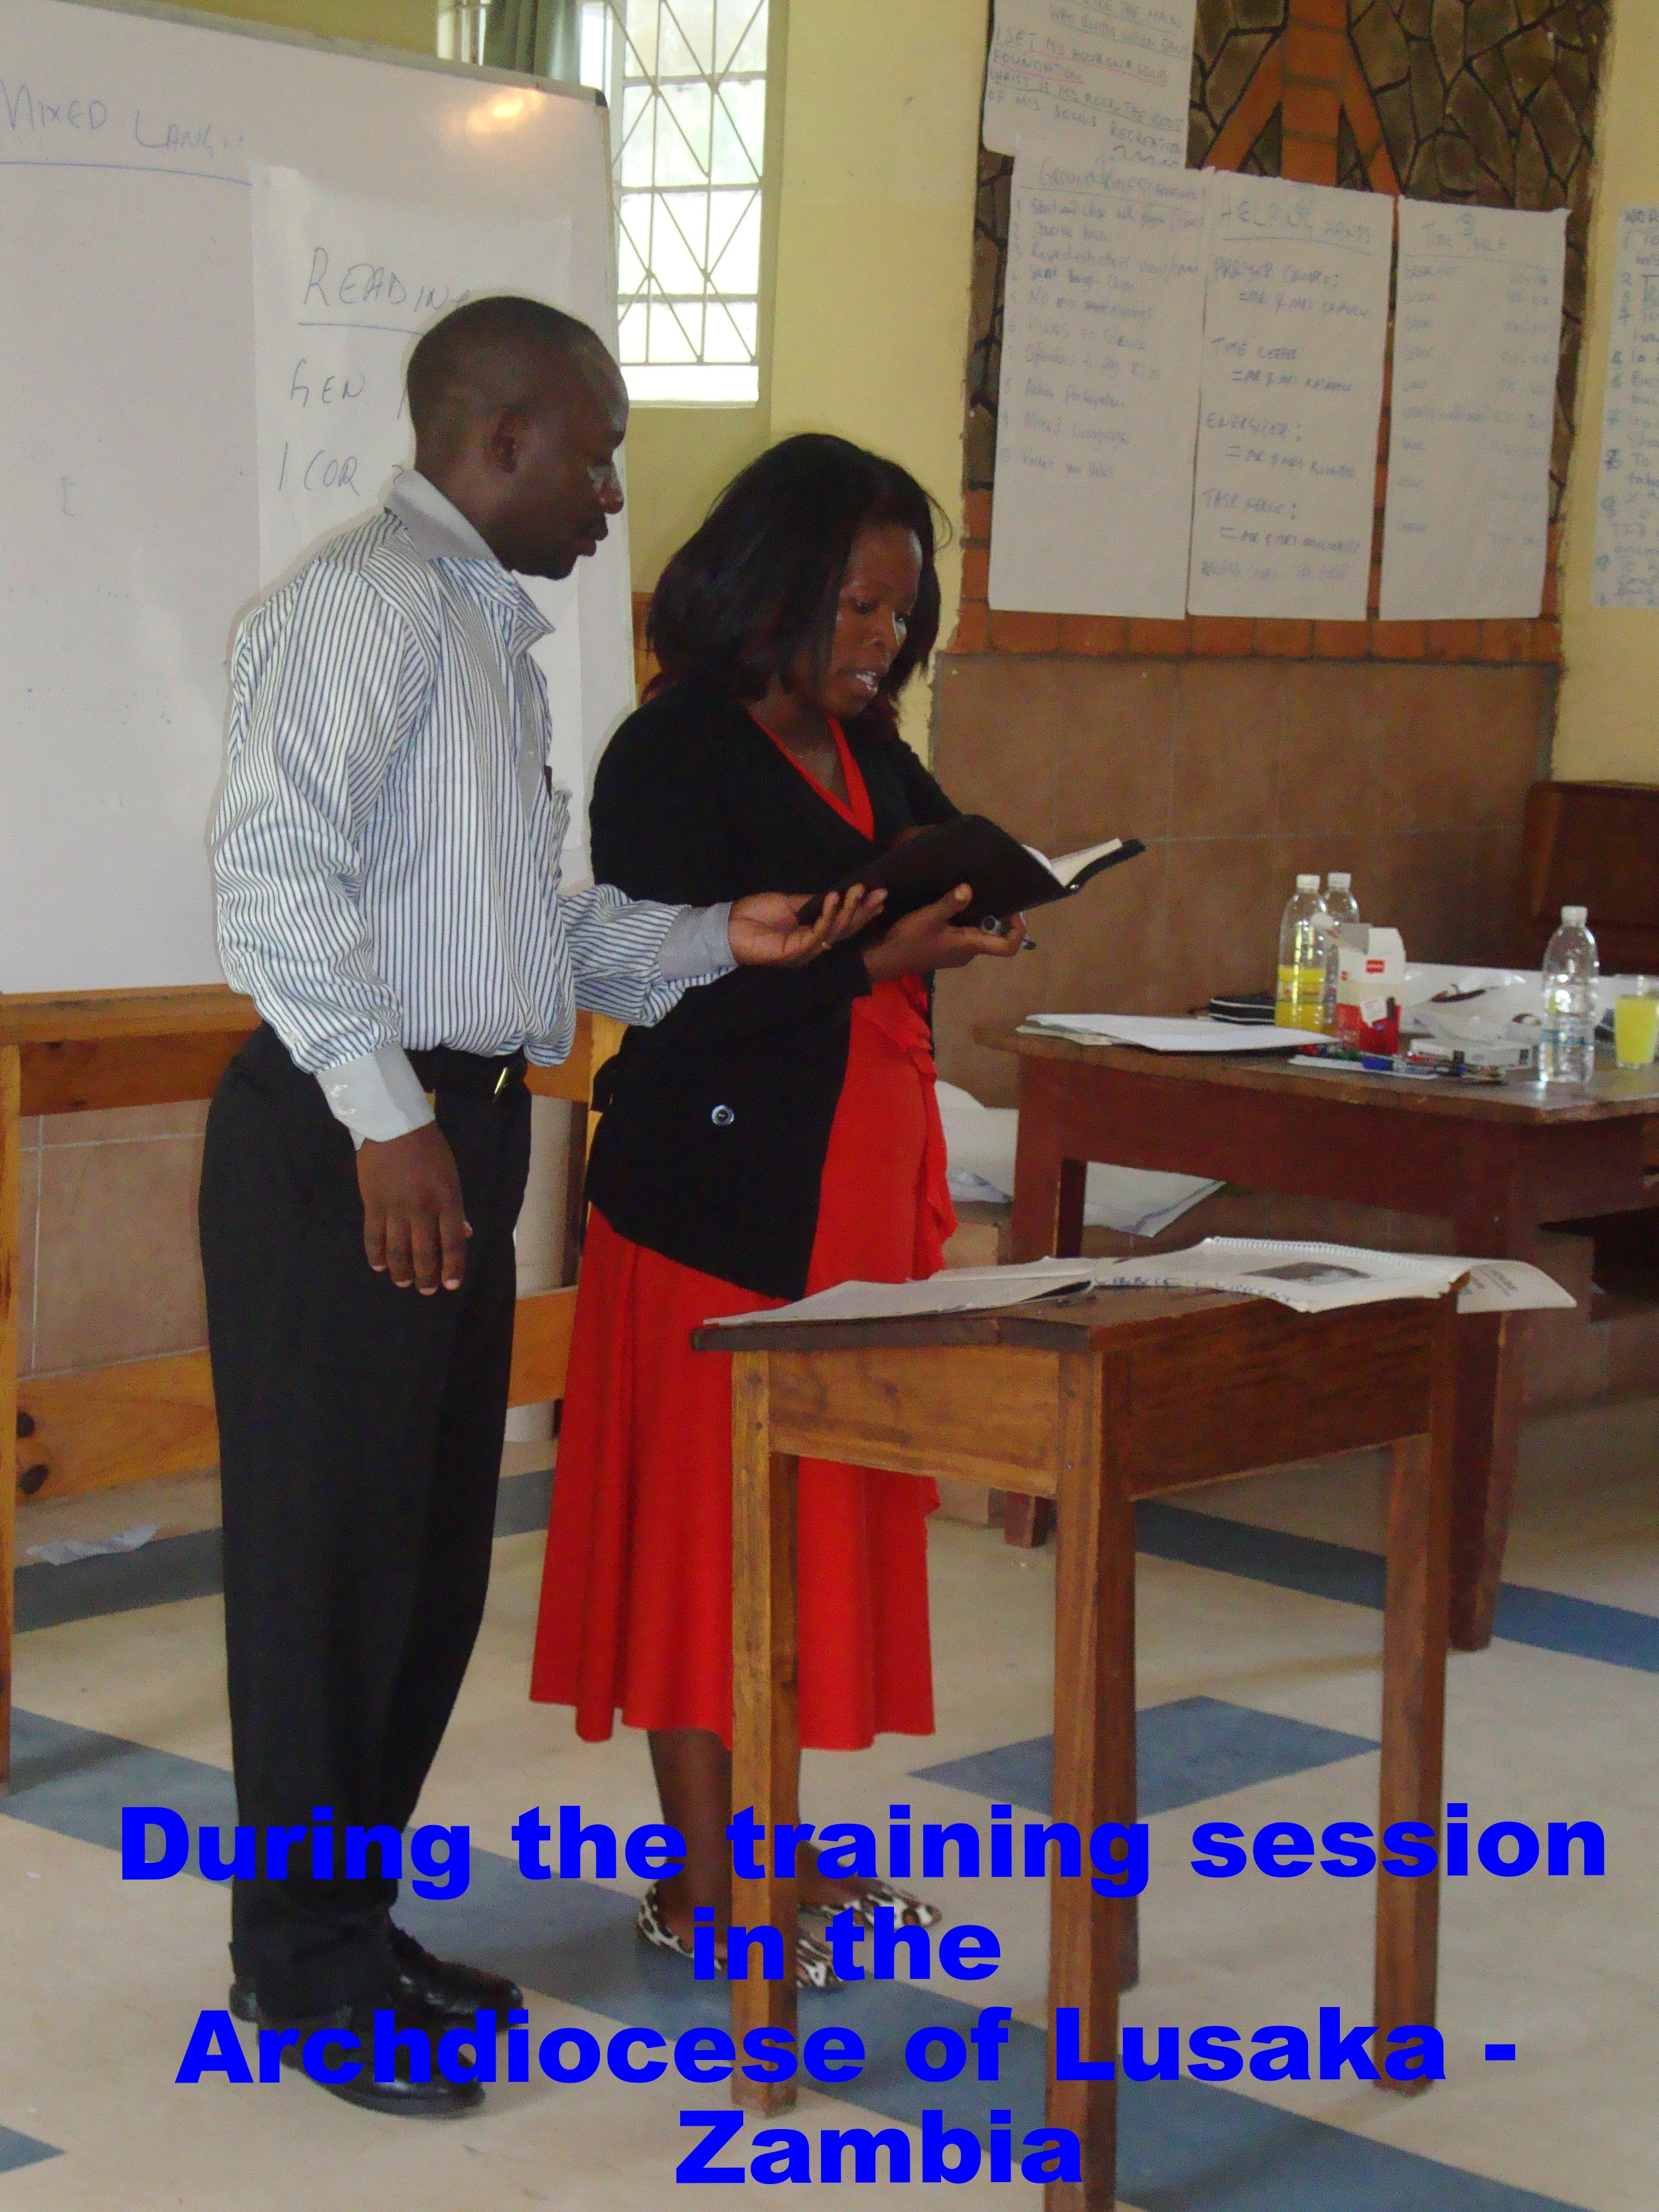 During the training session in the Archdiocese of Lusaka -  Zambia.jpg